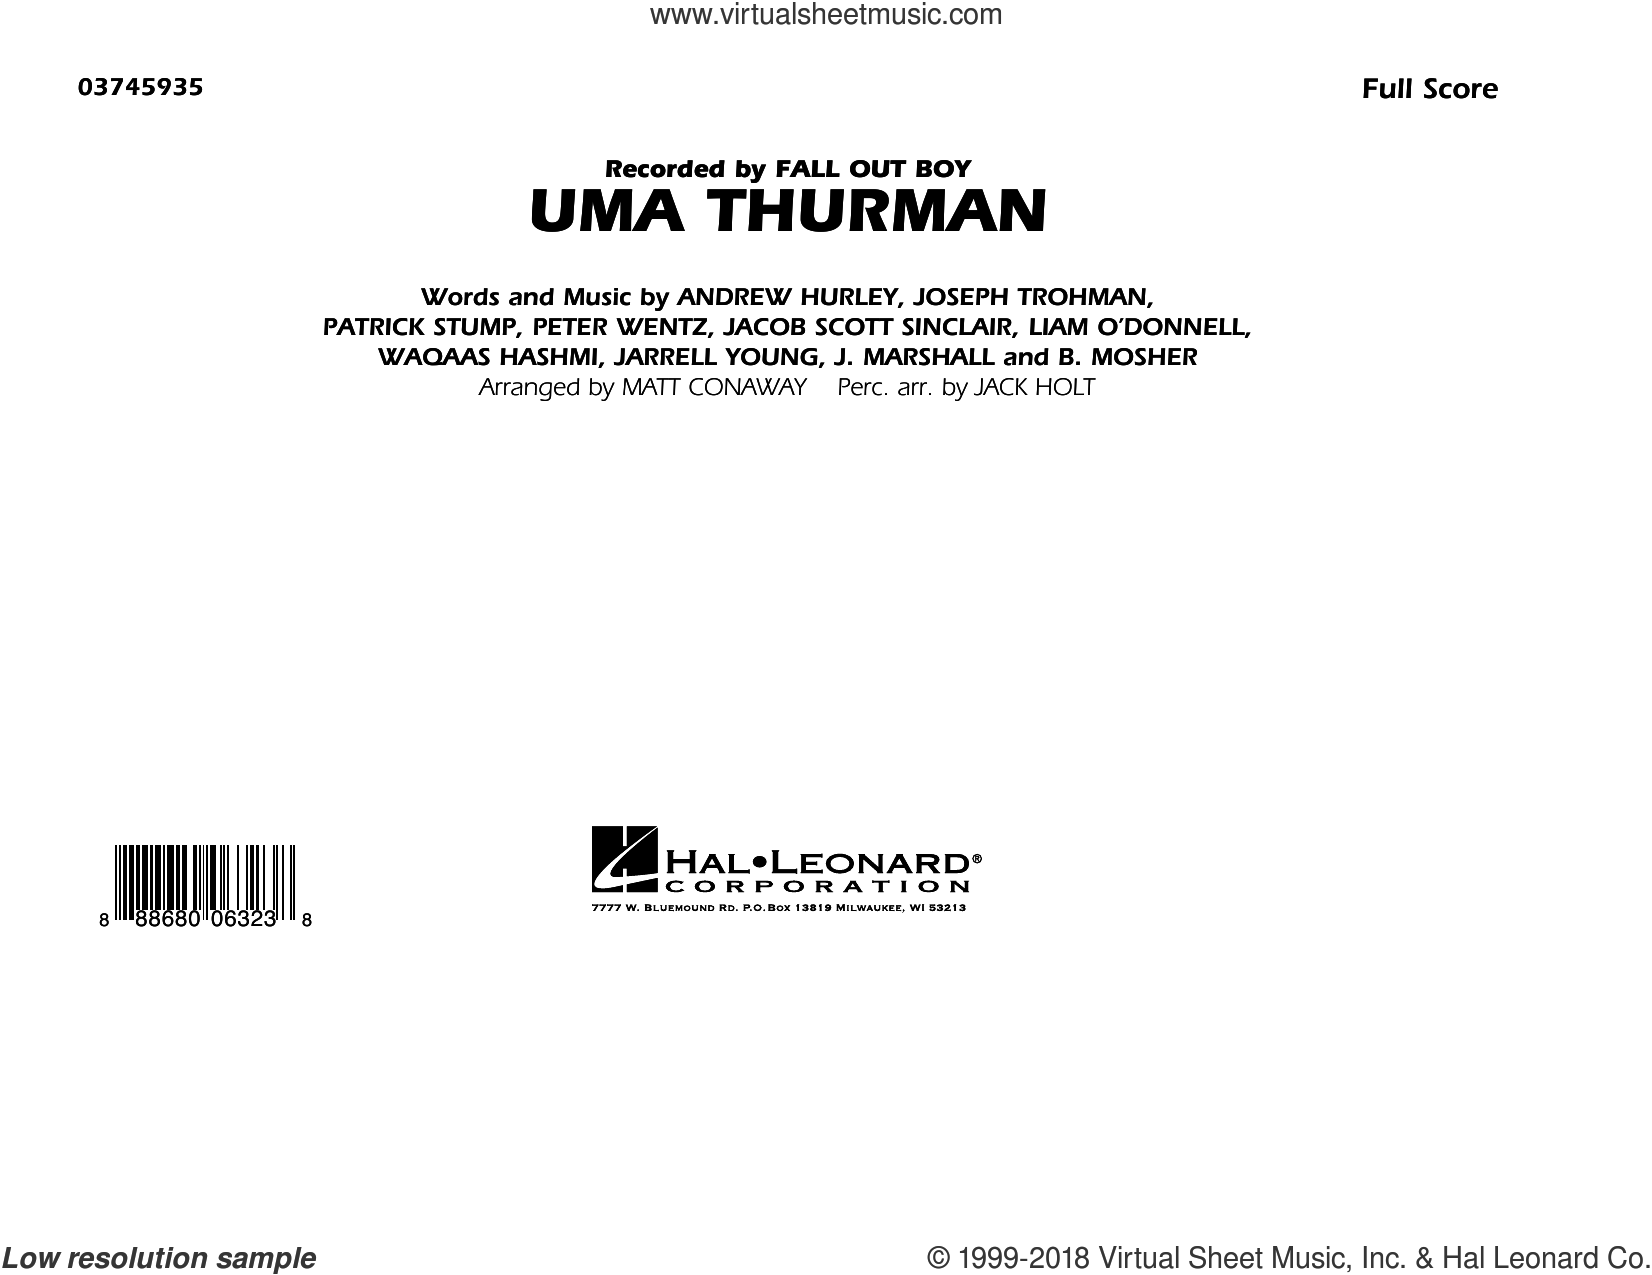 Uma Thurman (COMPLETE) sheet music for marching band by Fall Out Boy, Andrew Hurley, B. Mosher, J. Marshall, Jacob Scott Sinclair, Jarrell Young, Joseph Trohman, Matt Conaway, Patrick Stump, Peter Wentz and Waqaas Hashmi, intermediate